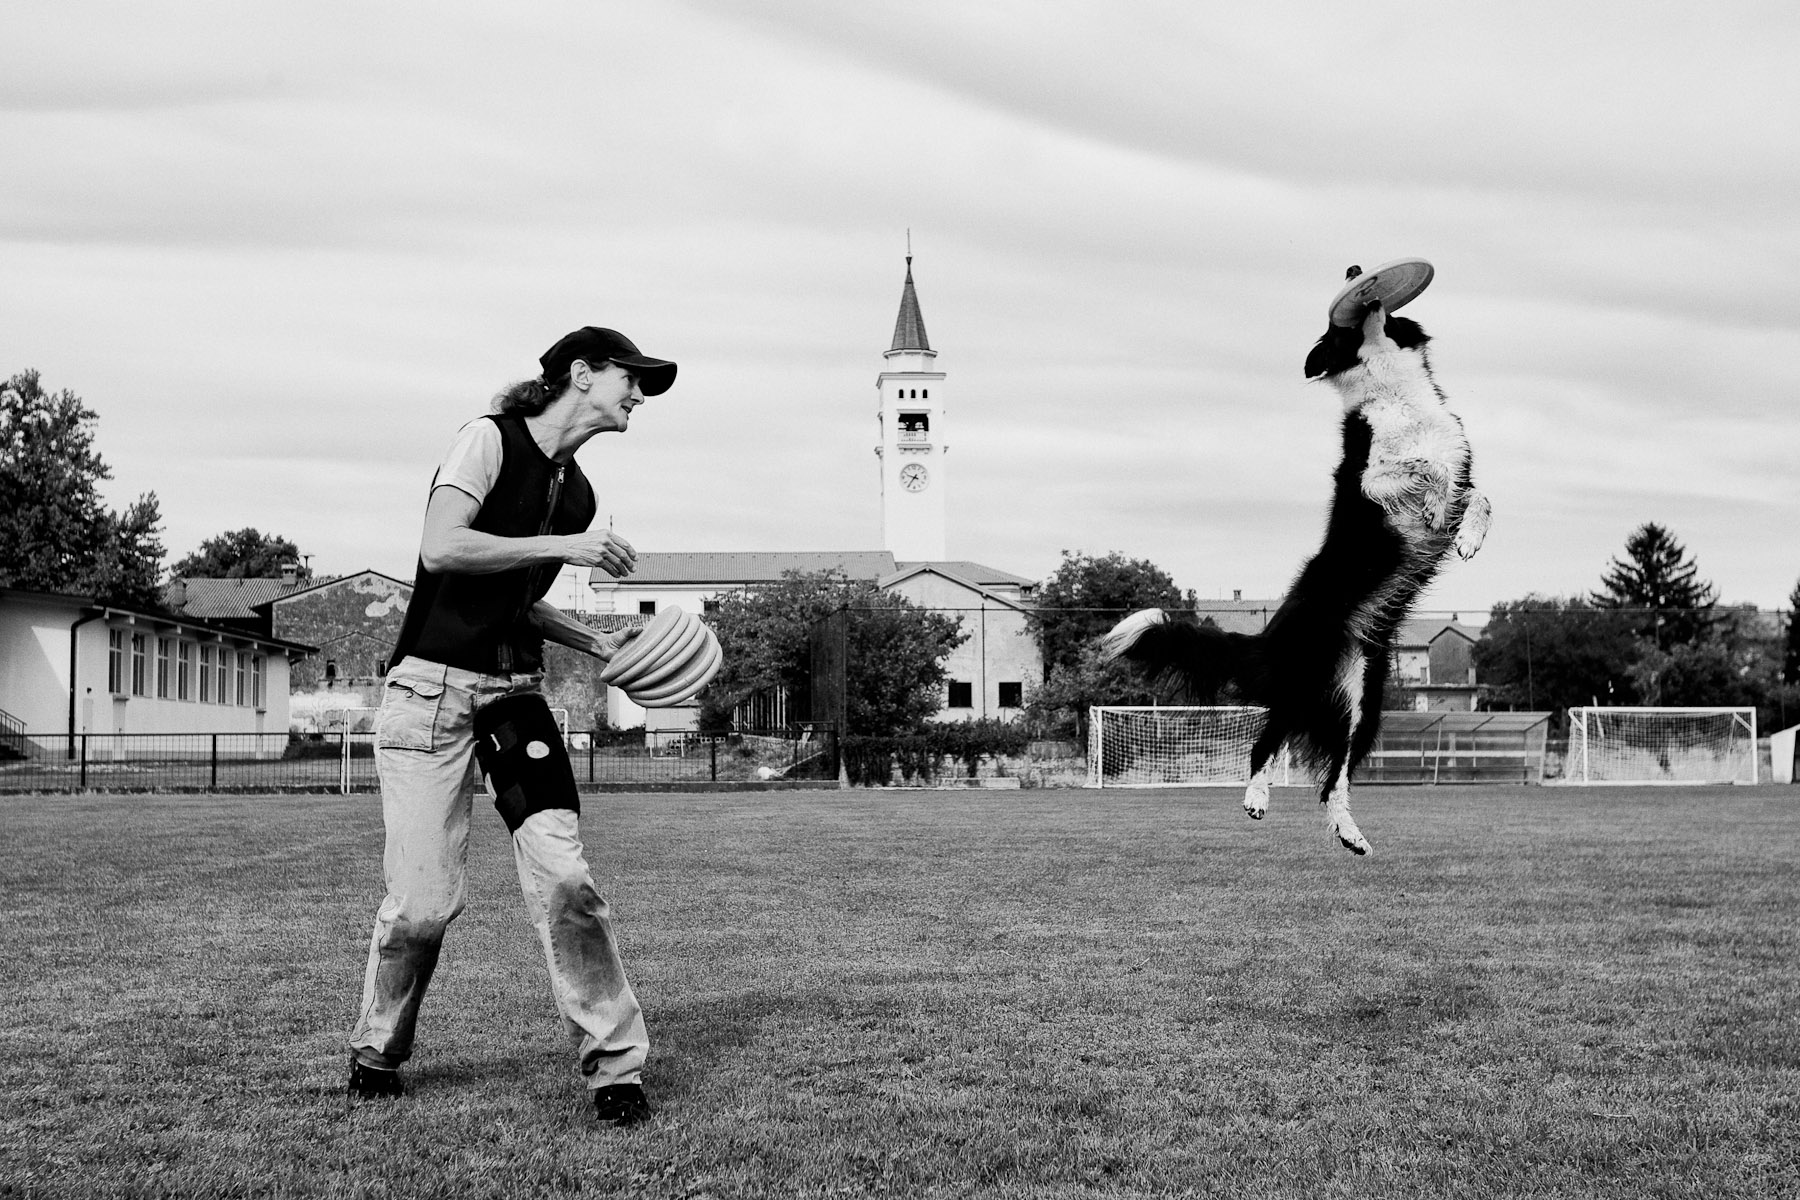 Jean and Lyra practice at a sports field of a football club in Rence, Slovenia, September 6, 2011.